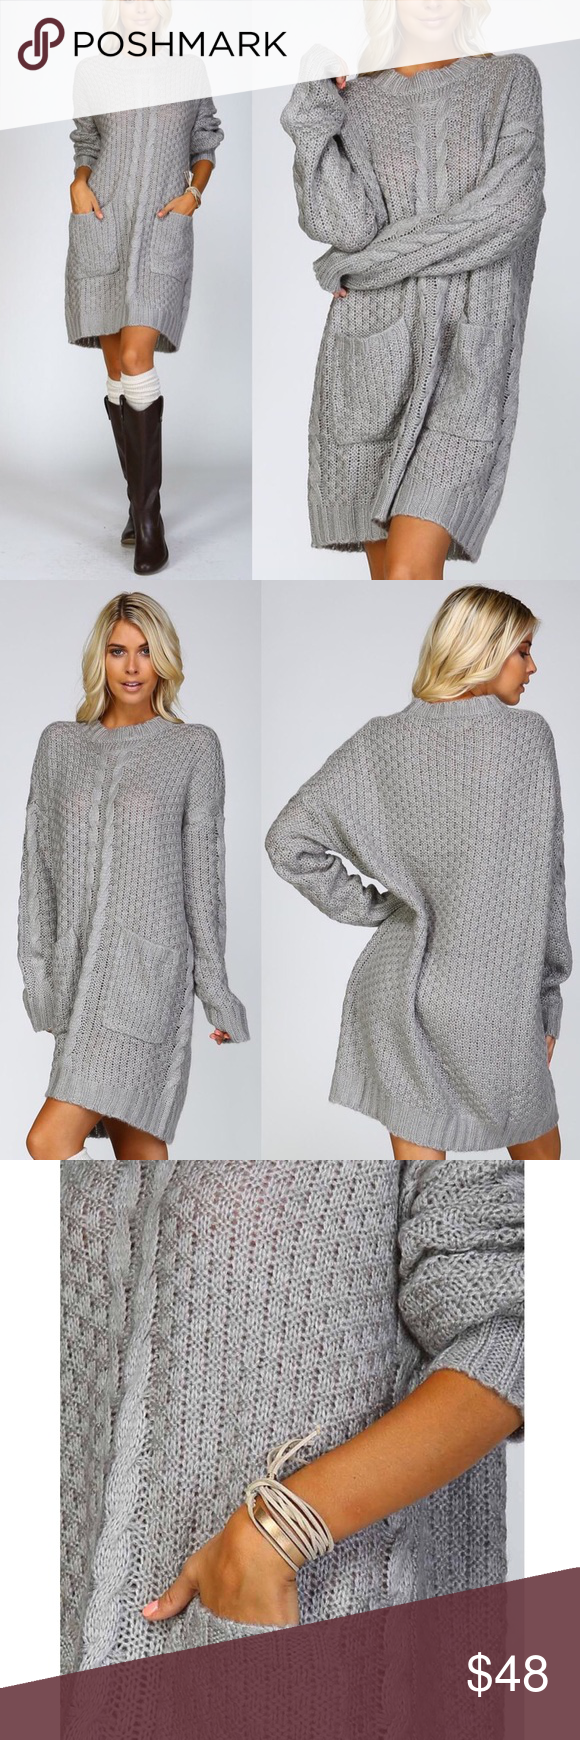 🆕BLUE IVY Chunky sweater dress w/ pockets - GREY | Chunky cable ...